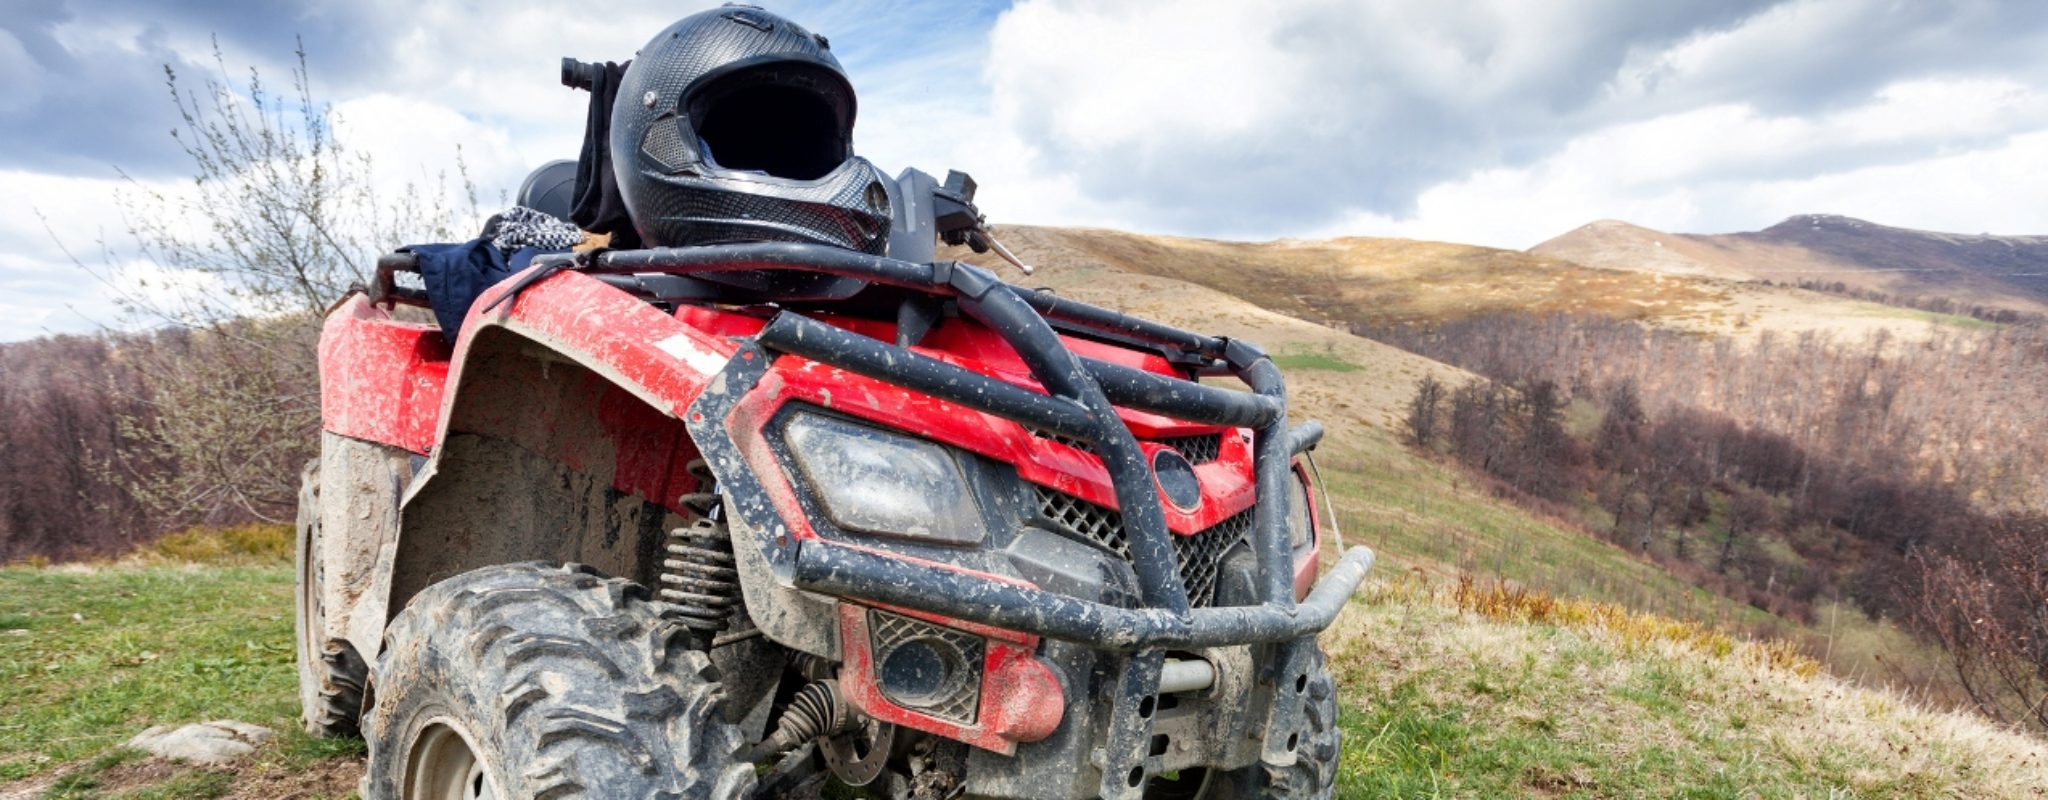 An ATV with a helmet shows the importance of ATV safety